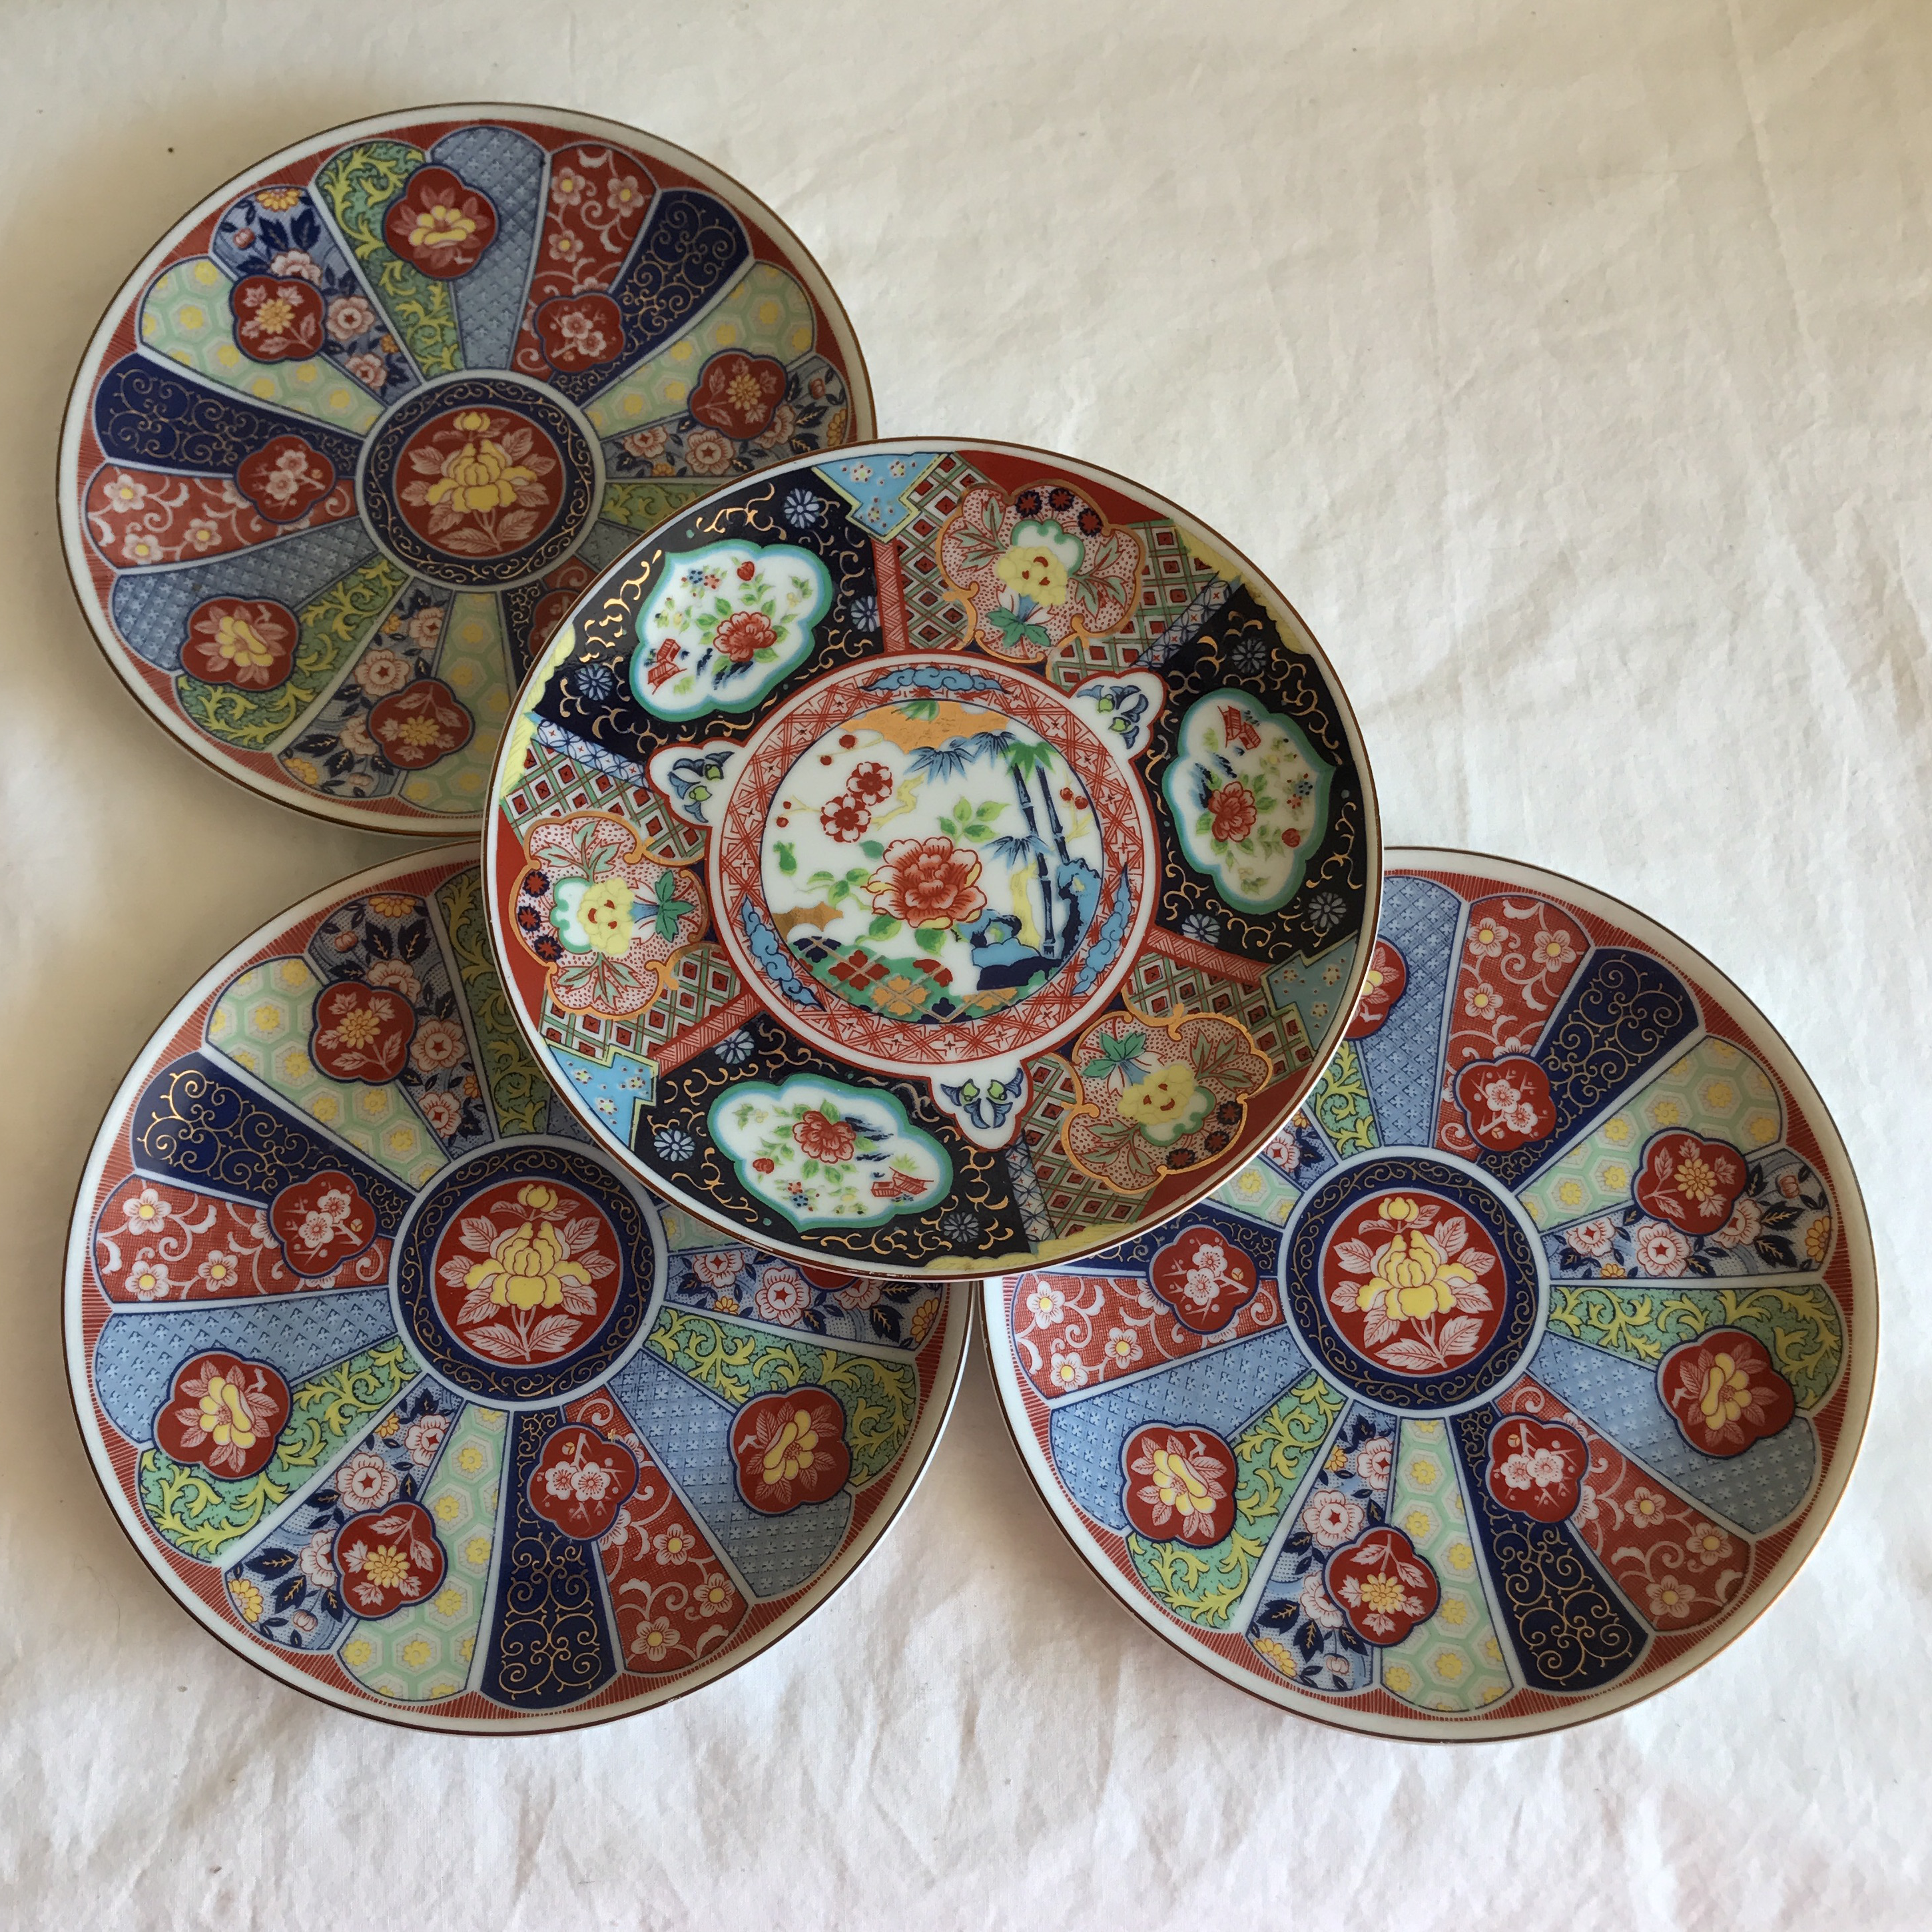 Lotus Floral Japanese Plates - Set of 4 - Image 6 of 10 & Lotus Floral Japanese Plates - Set of 4 | Chairish